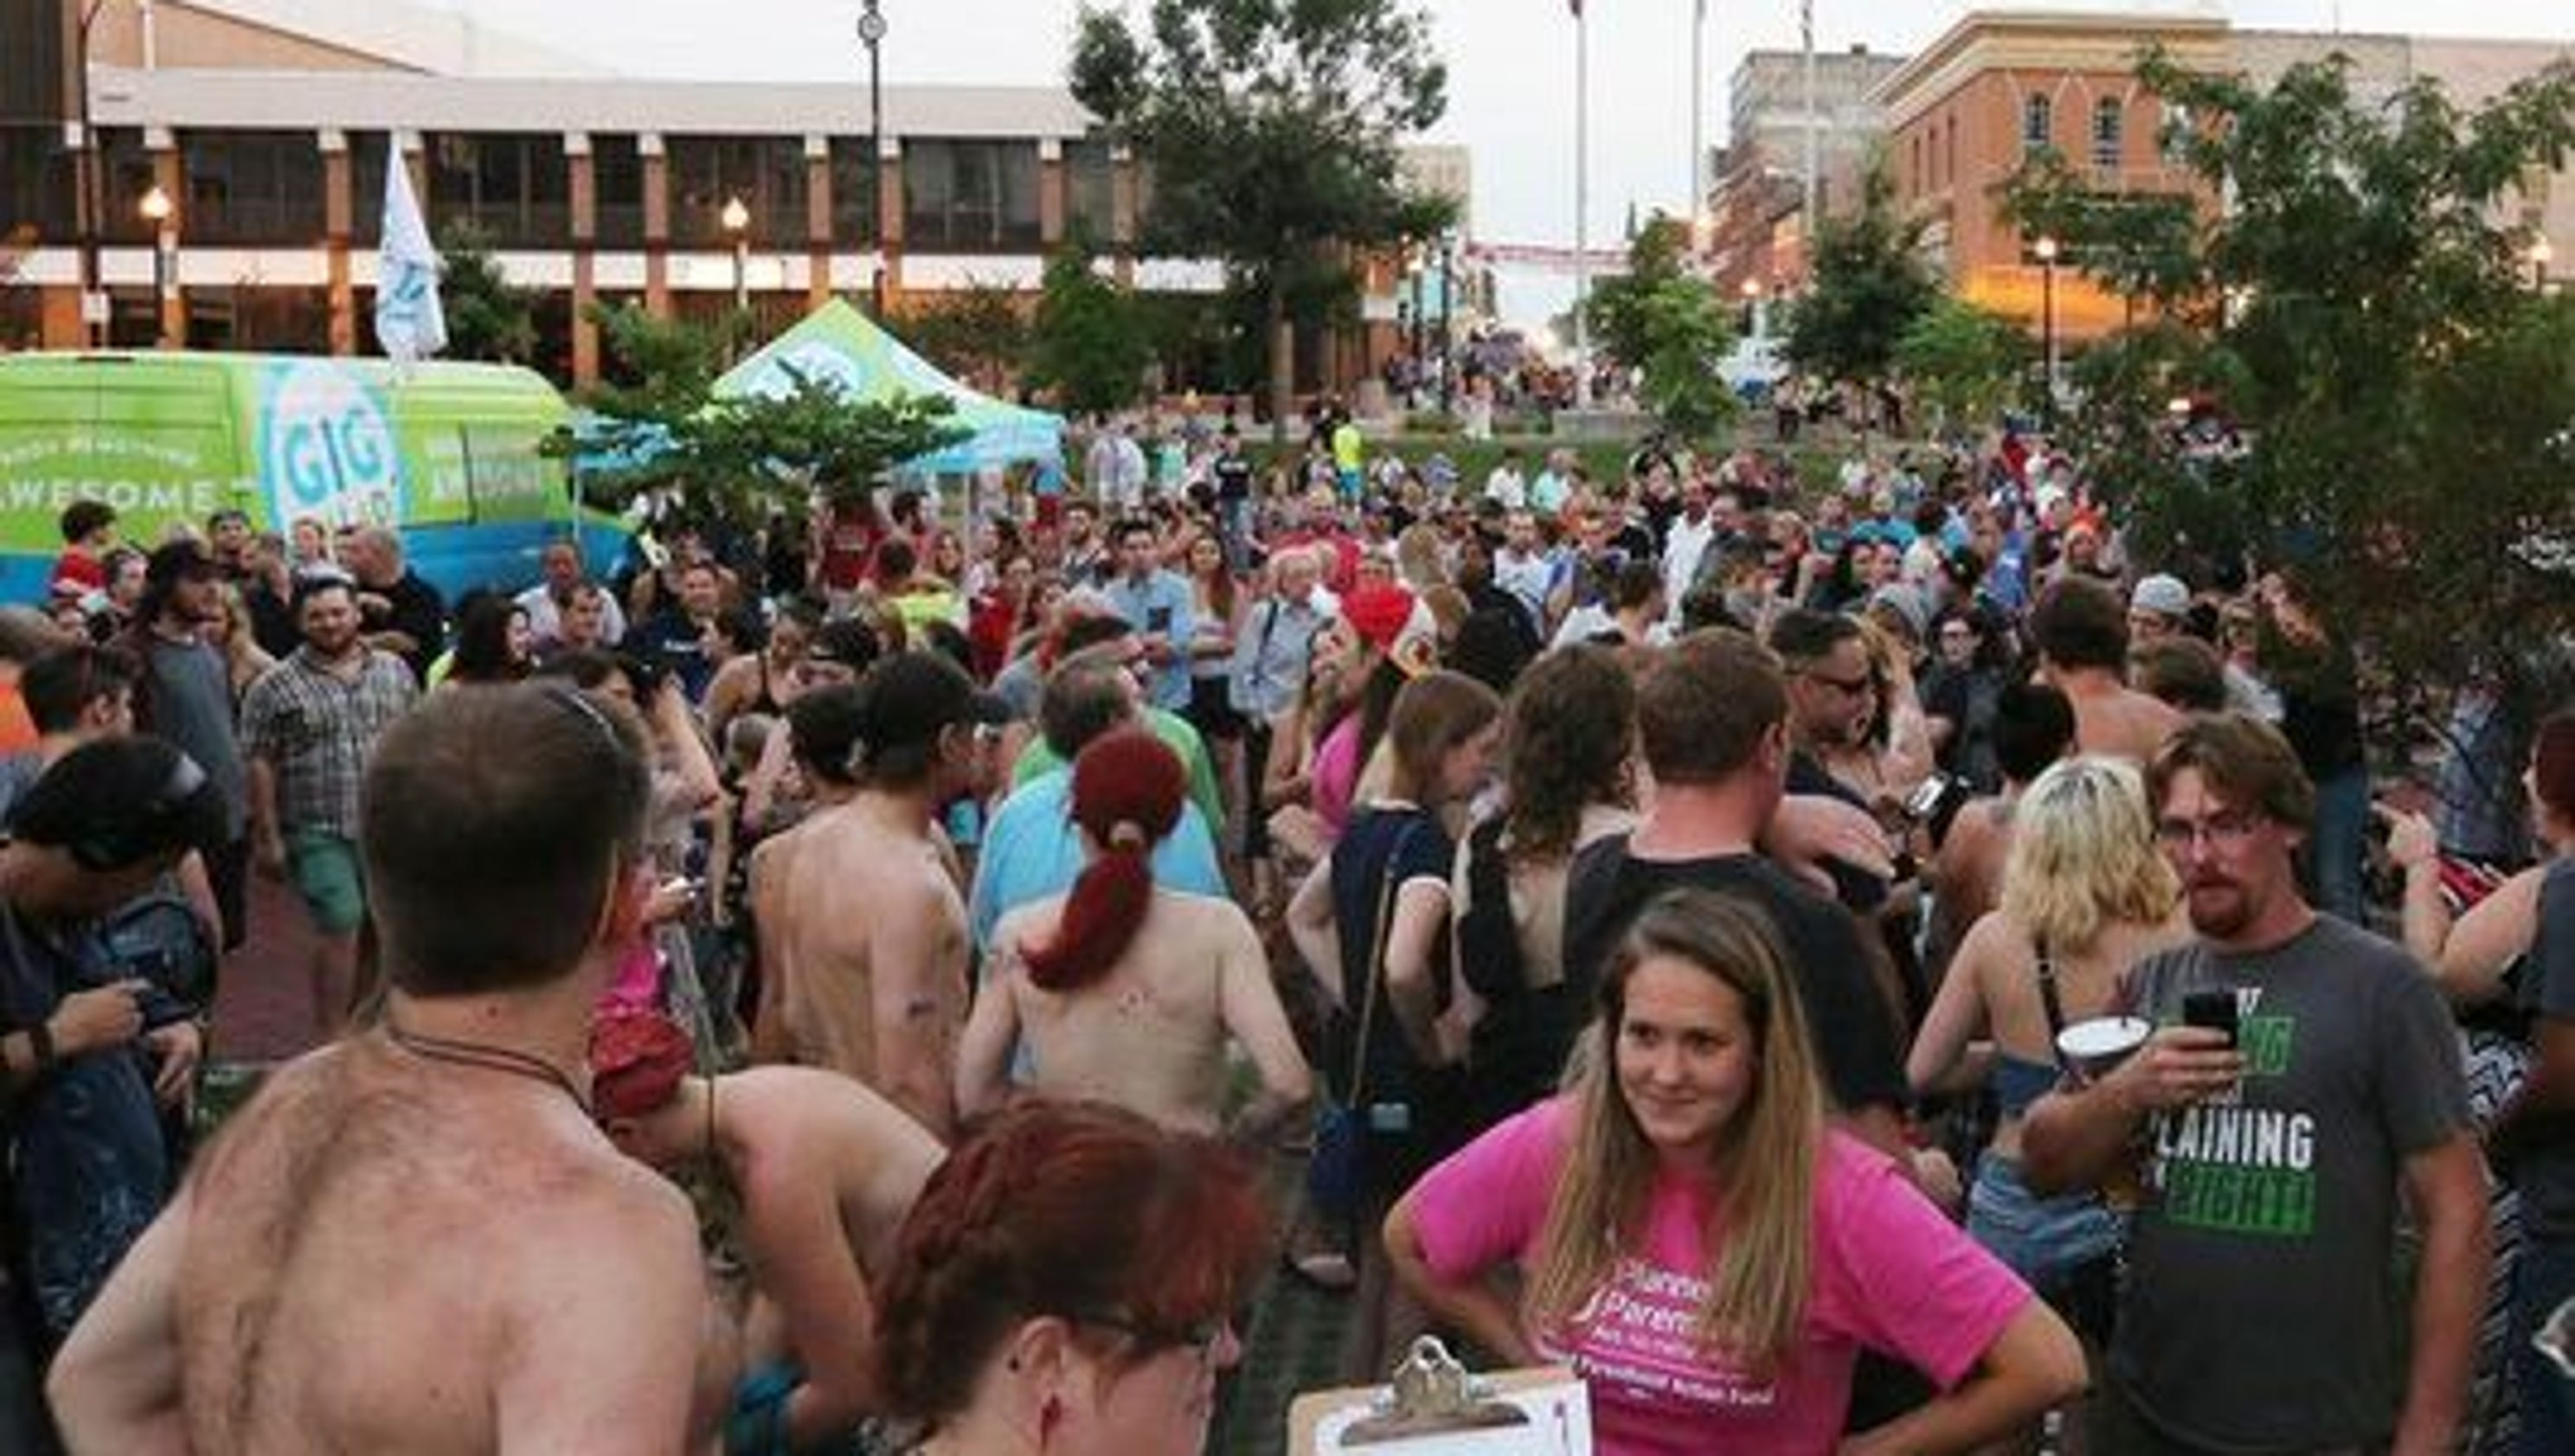 ACLU sues Springfield over indecent exposure law   3200 x 1680 jpeg 469kB